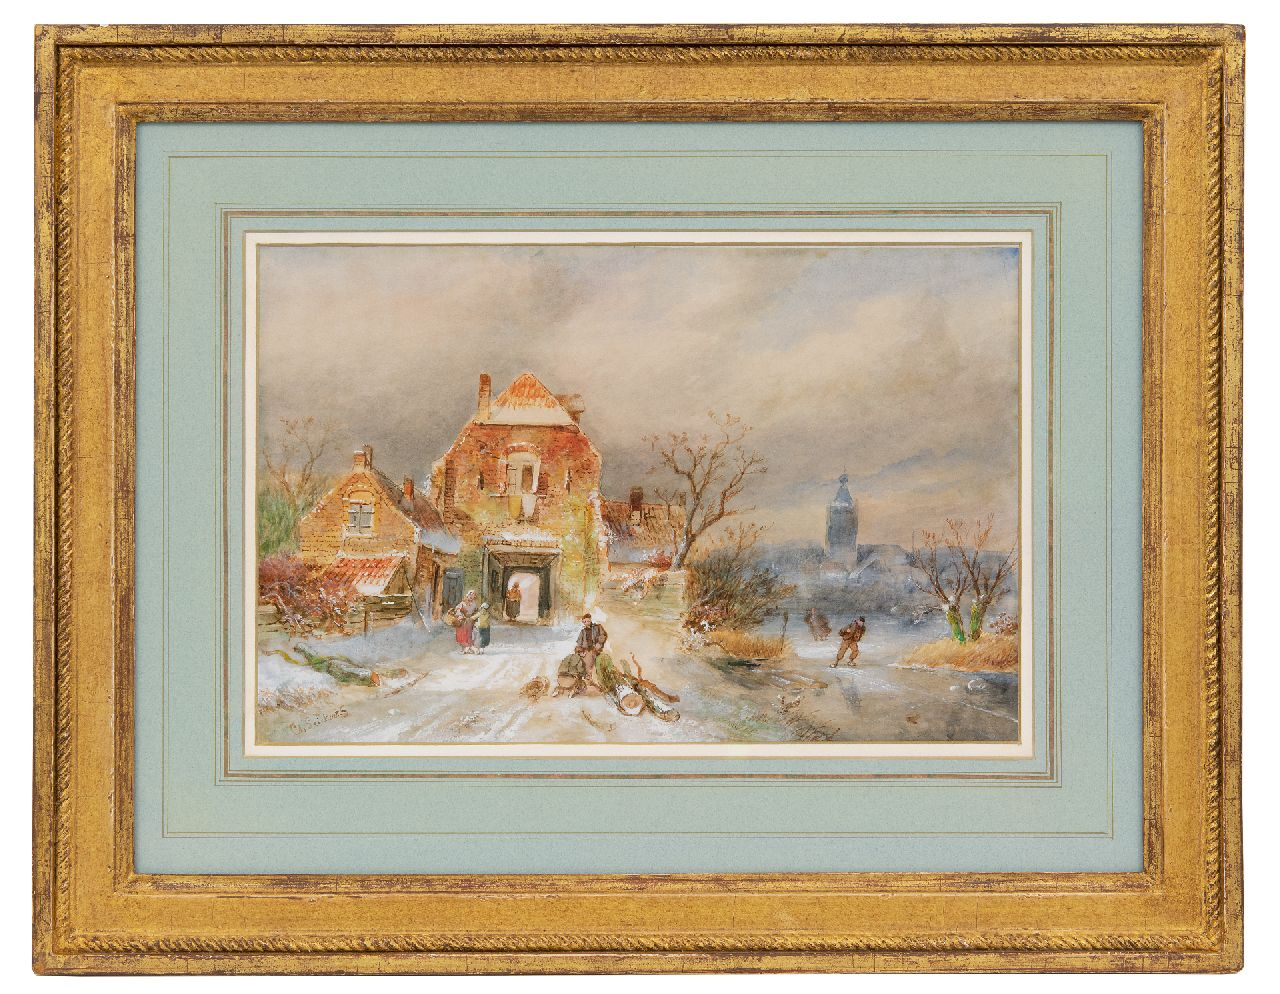 Leickert C.H.J.  | 'Charles' Henri Joseph Leickert | Watercolours and drawings offered for sale | A town in winter with skaters, watercolour on paper 23.1 x 34.8 cm, signed l.l.